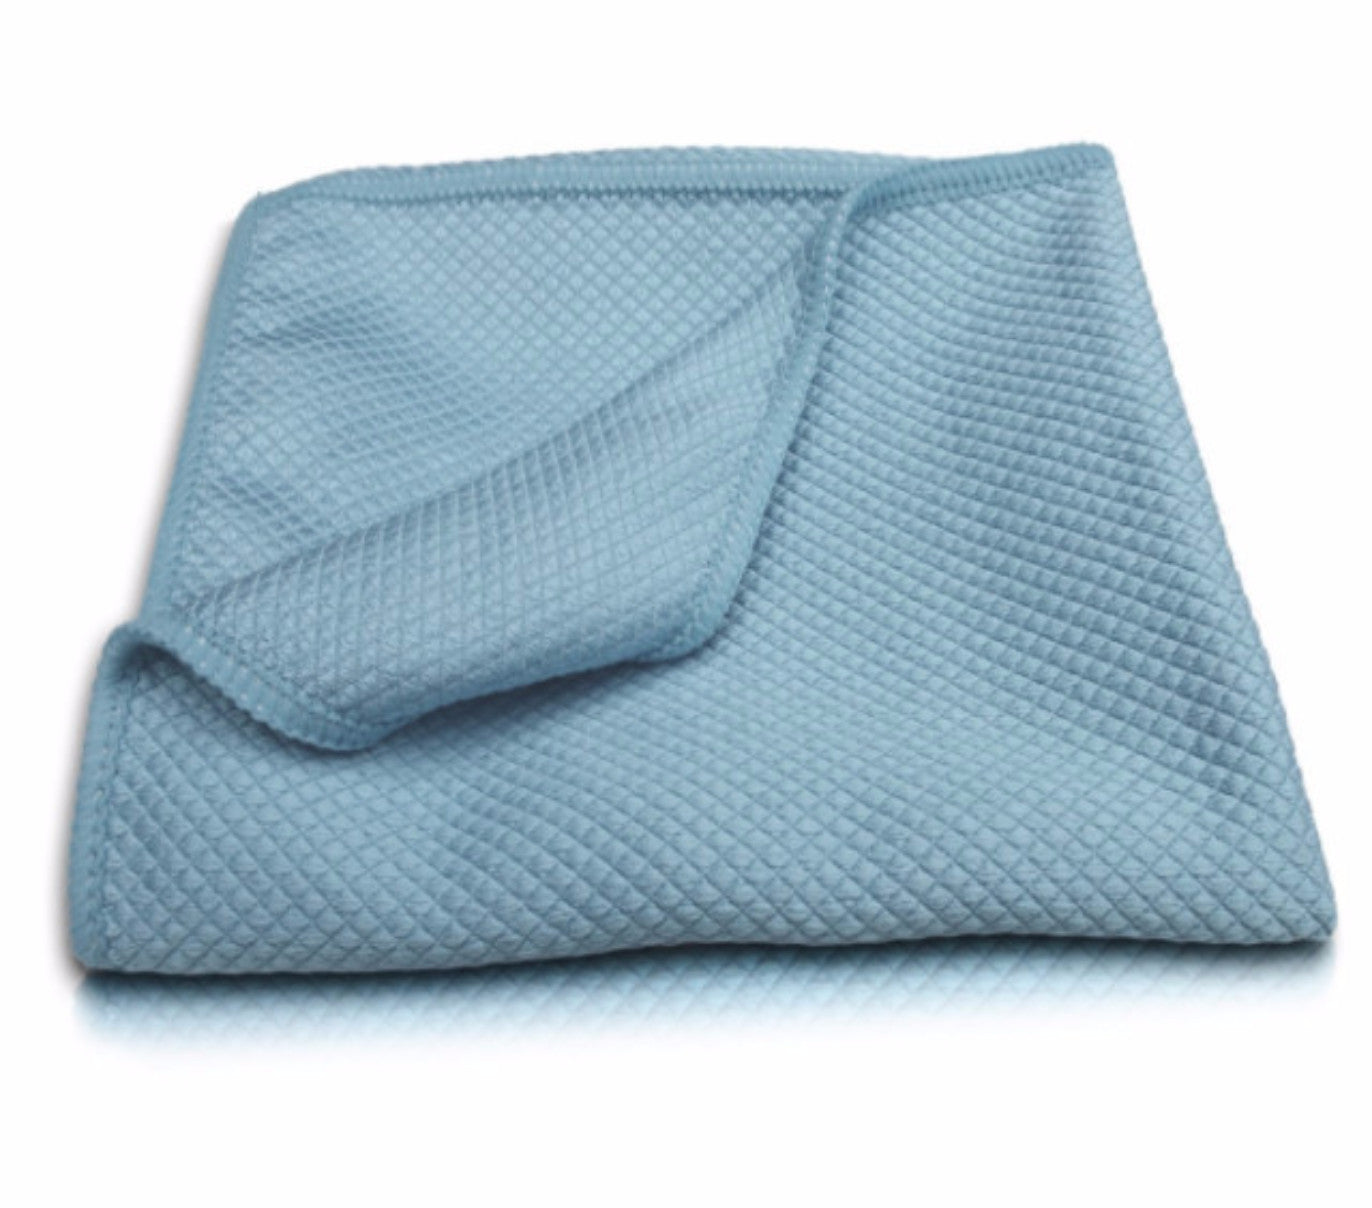 Pro Chef Kitchen Tools Stainless Steel Microfiber Cleaning Cloth - 3 P